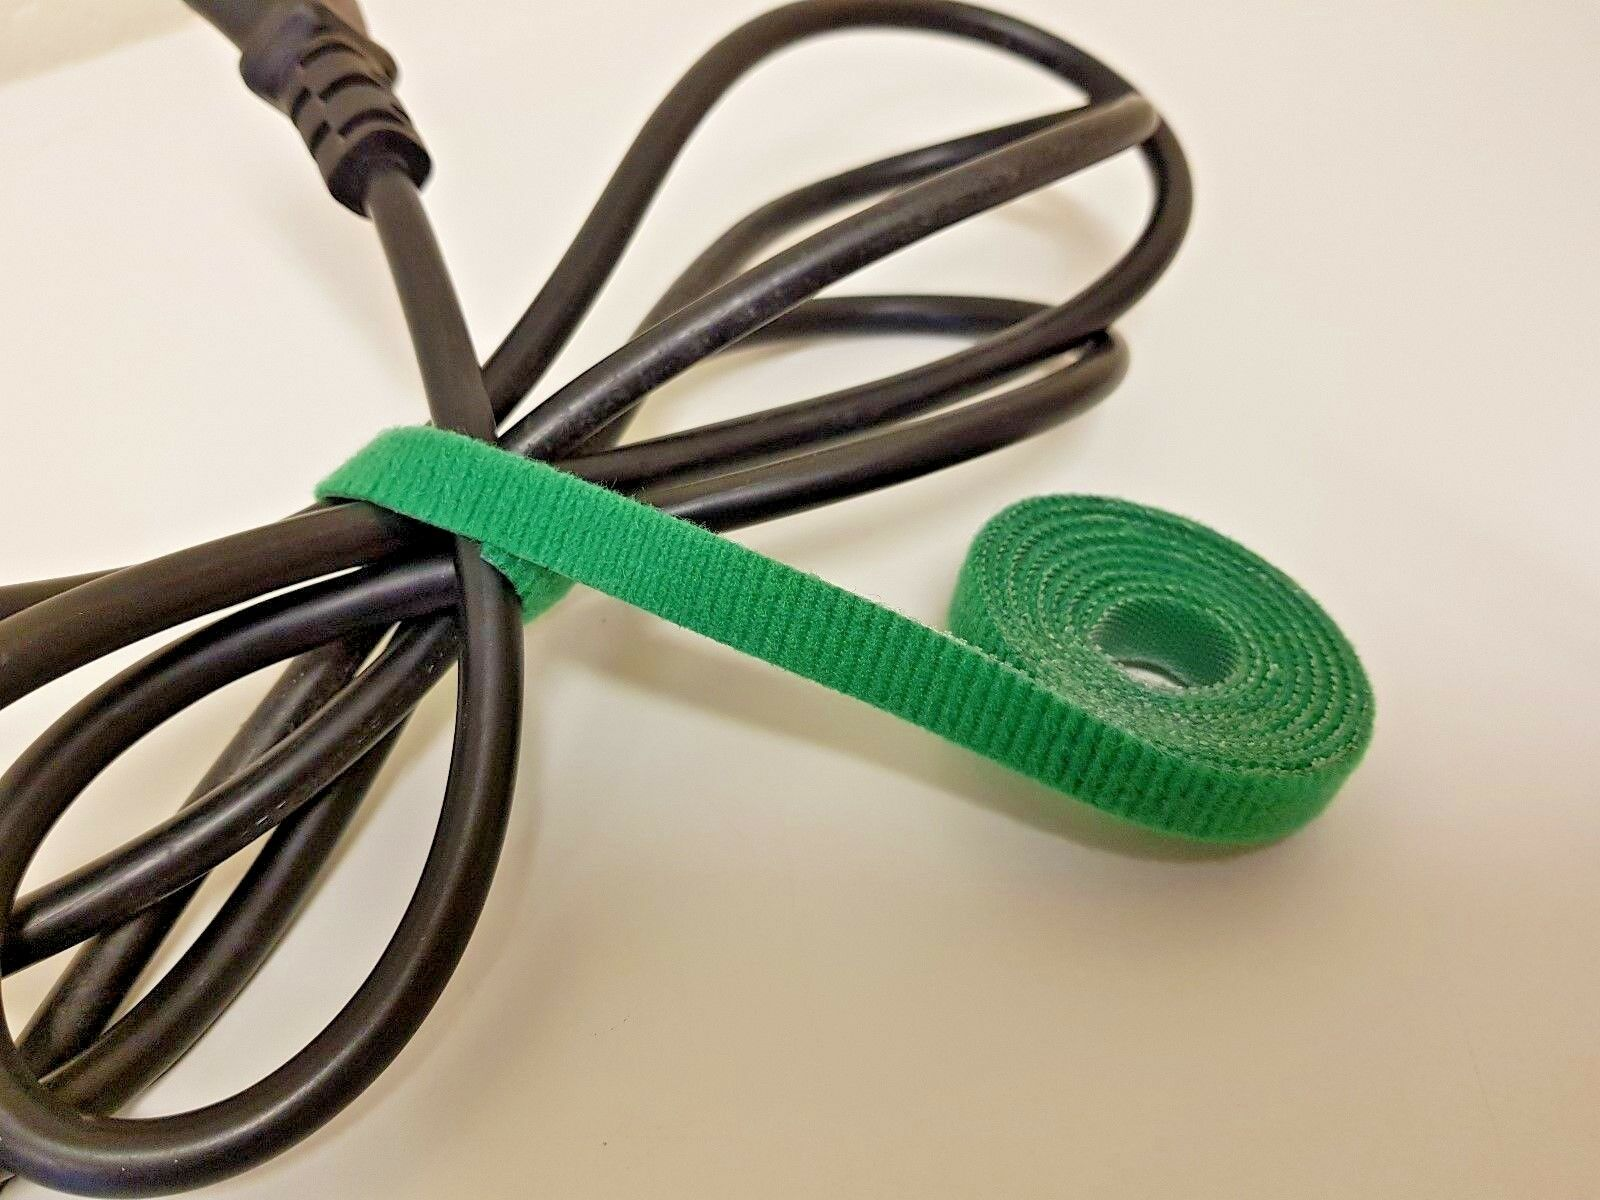 Hook and Loop (Like Velcro) in 1 meter lengths, Cable Ties, Cable Management